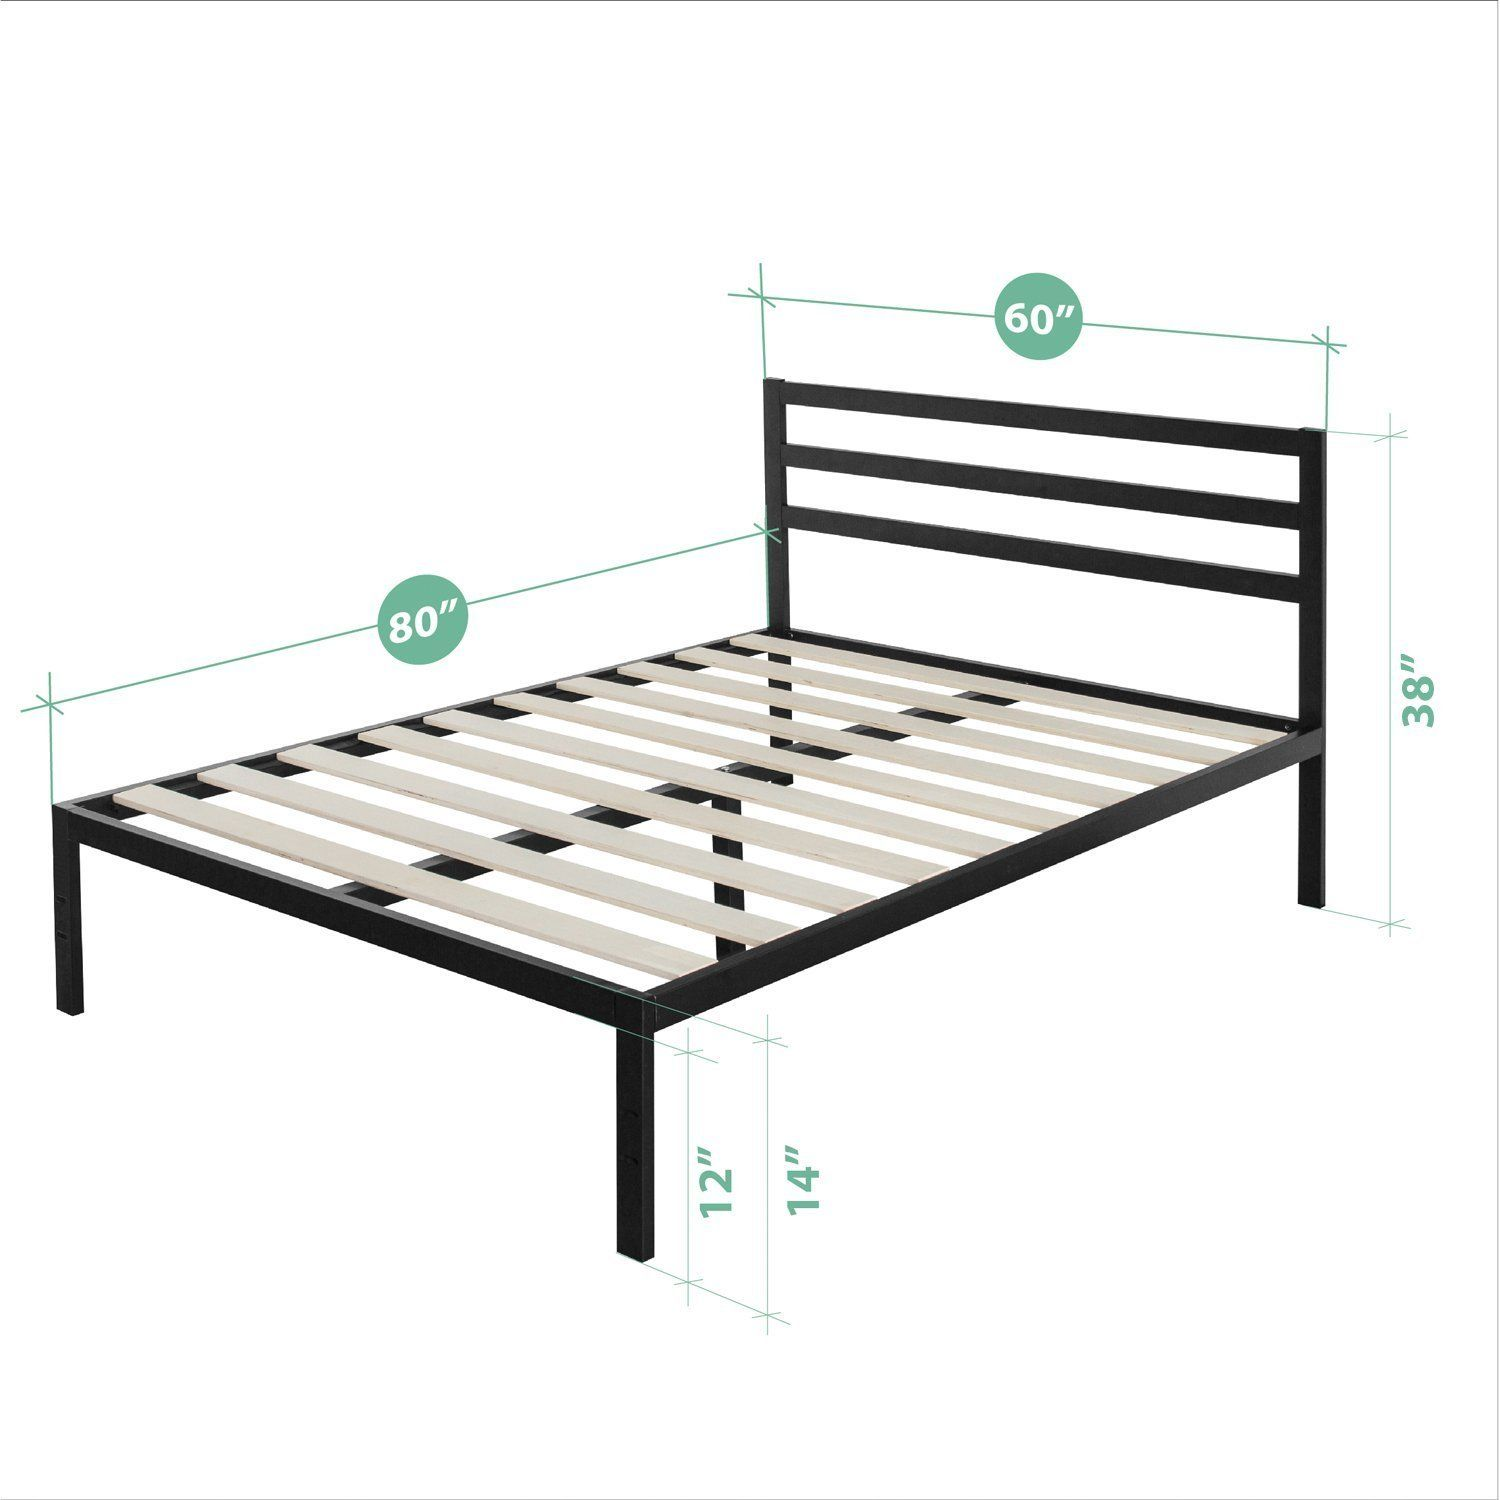 Amazonsmile Zinus Modern Studio 14 Inch Platform 1500h Metal Bed Frame Mattress Foundation Wooden Slat Support With Headboard Queen Metal Platform Bed Metal Beds Bed Frame Headboard